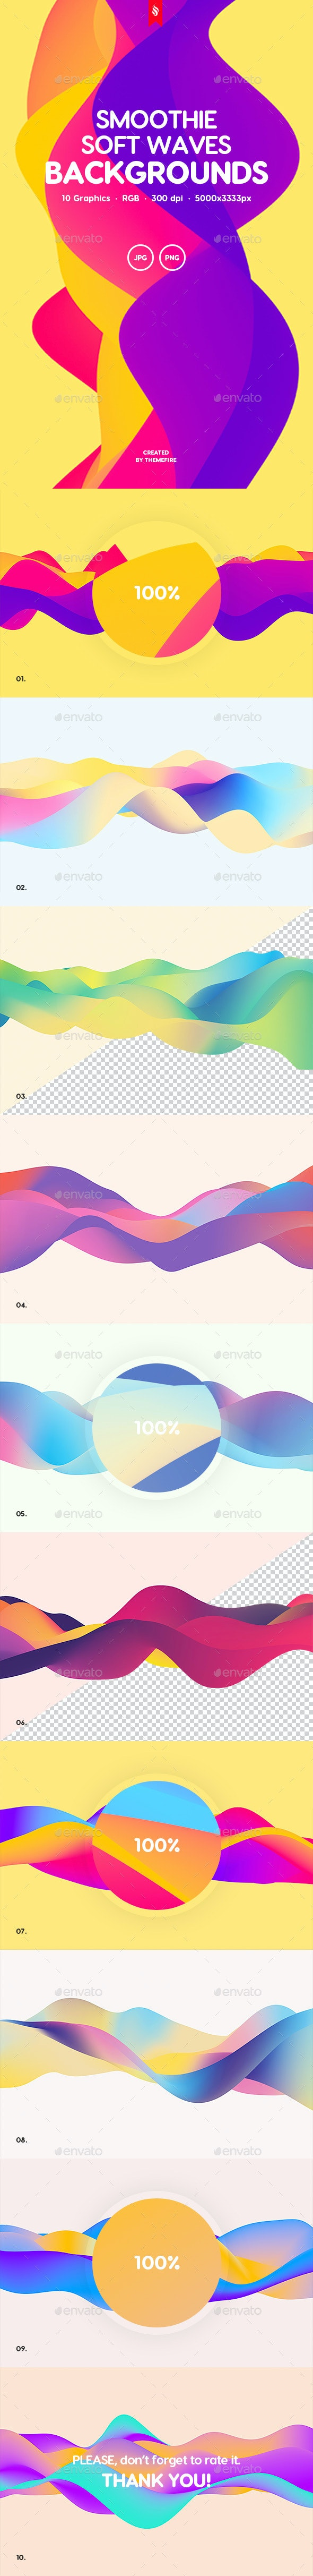 Smoothie - Soft Colorful Waves Background Set - Abstract Backgrounds